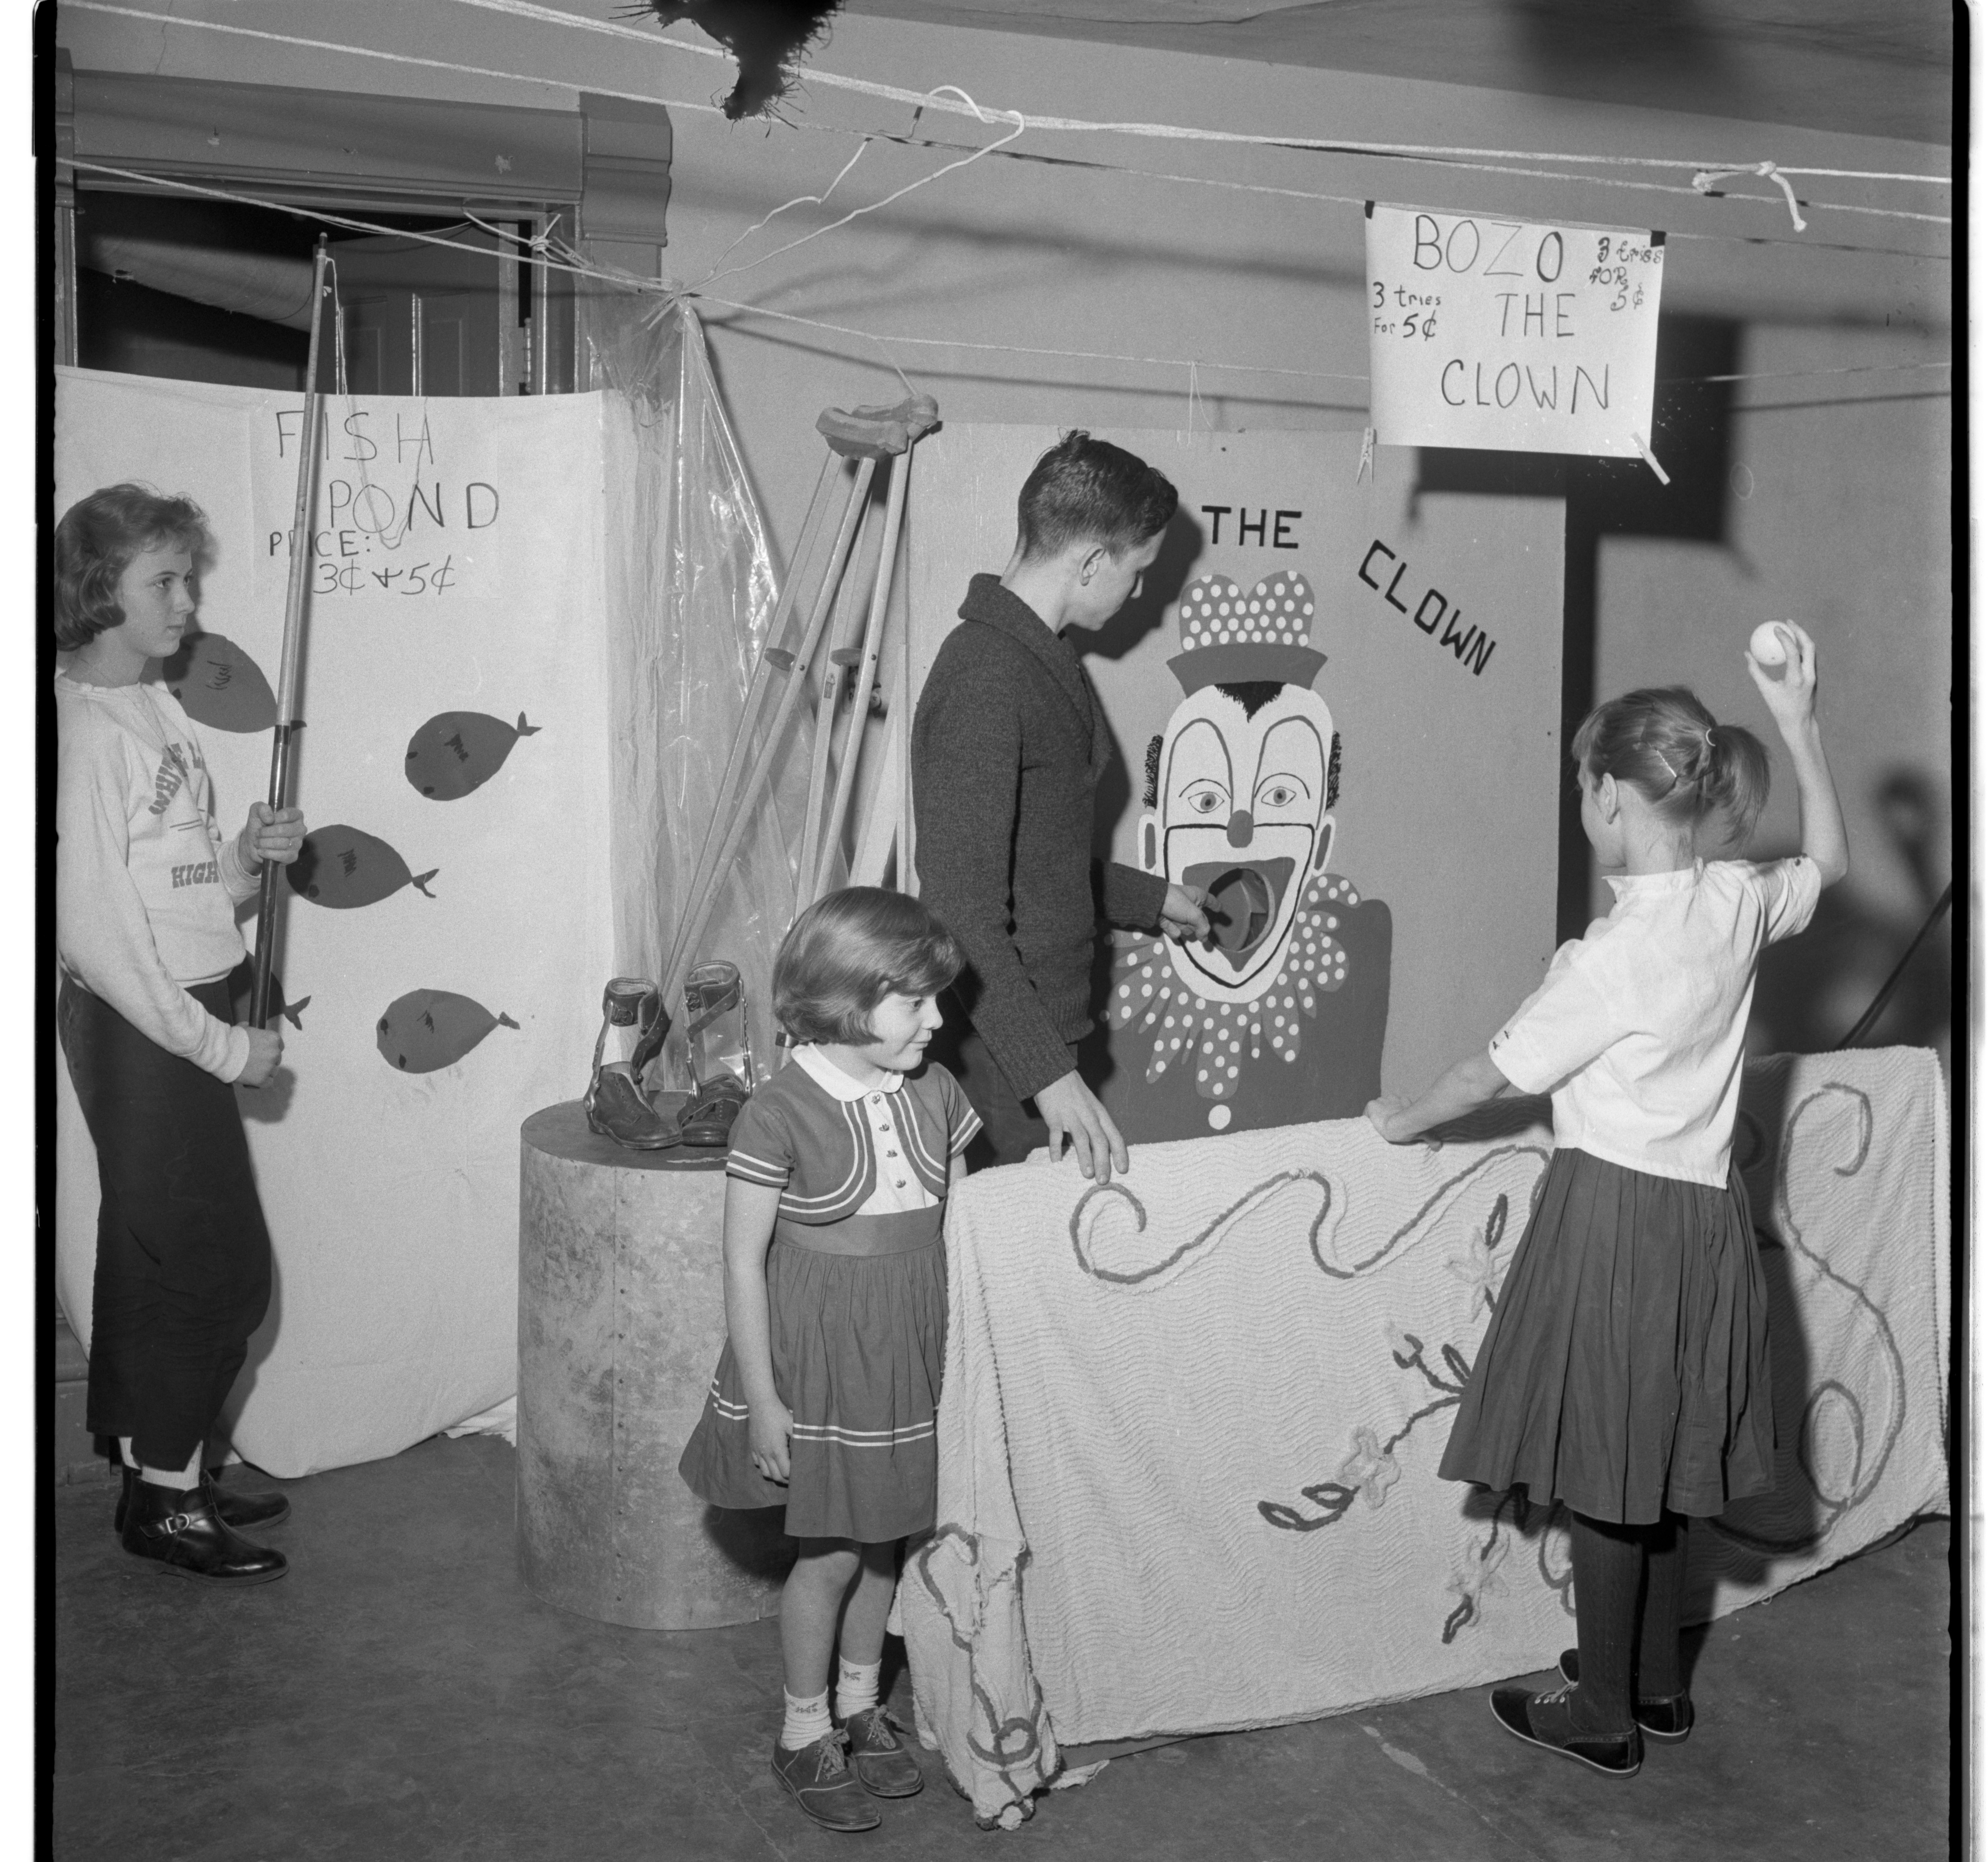 Euper Family of Whitmore Lake Sponsors Carnival for March of Dimes Campaign, January 1962 image